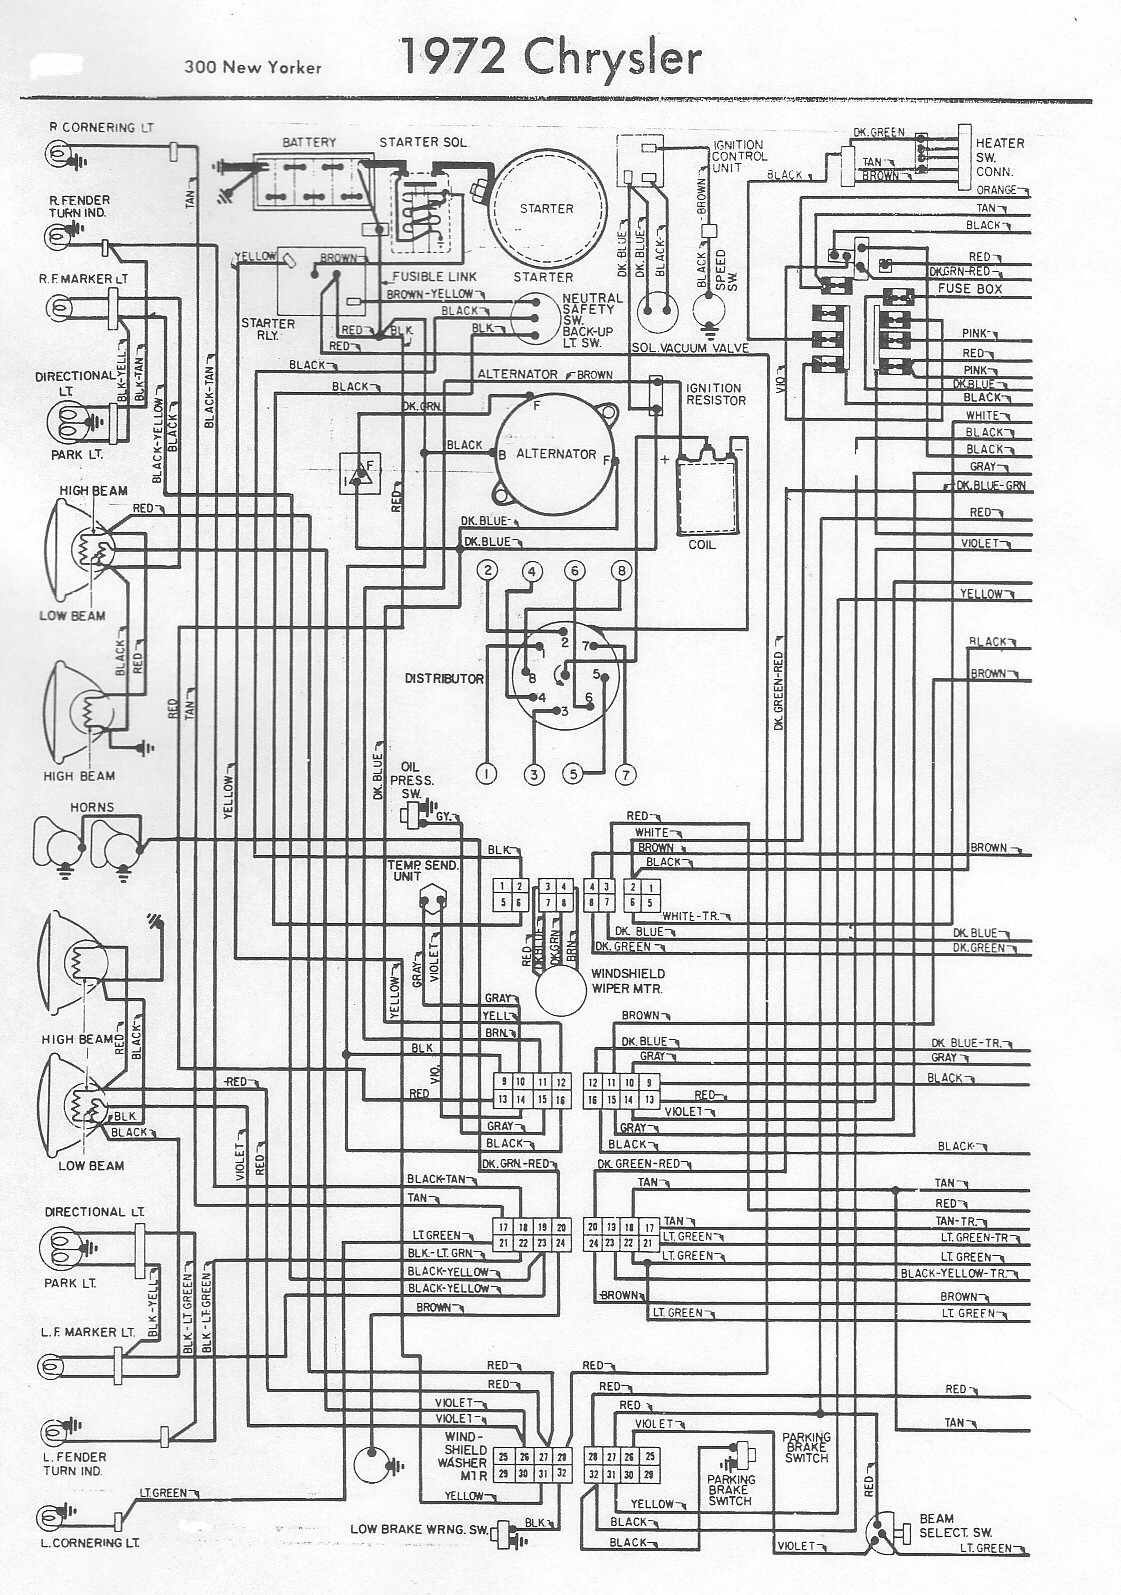 automotive wiring diagrams page 147 of 301 new model wiring diagram  alfa romeo 147 wiring diagram pdf alfa romeo 147 wiring diagramwiring diagrams for 1984 alfa romeo